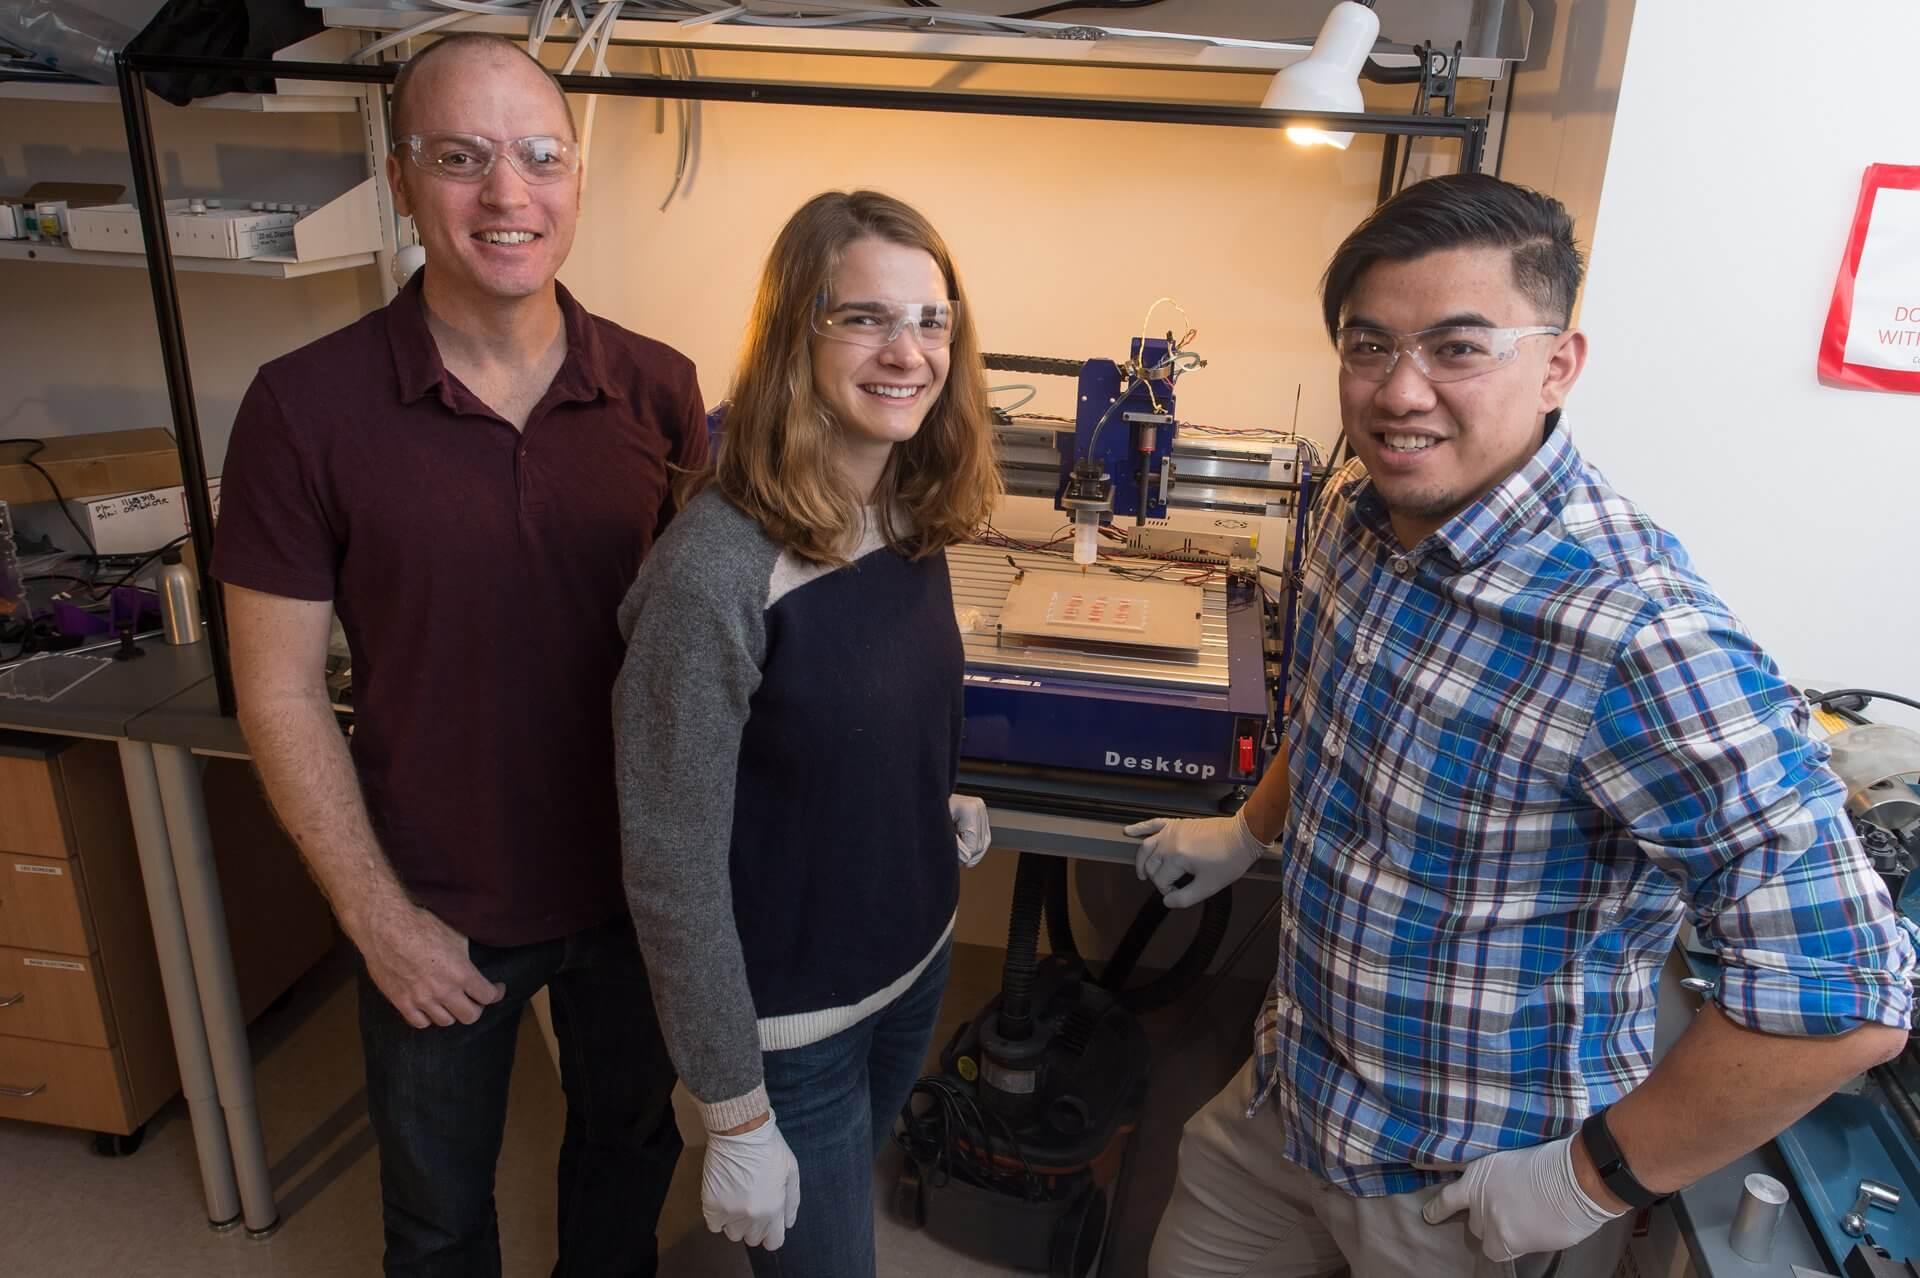 From left, Jordan Miller, Samantha Paulsen and Anderson Ta stand with the 3-D printer they used to create the silicone constructs. (Photo by Jeff Fitlow)